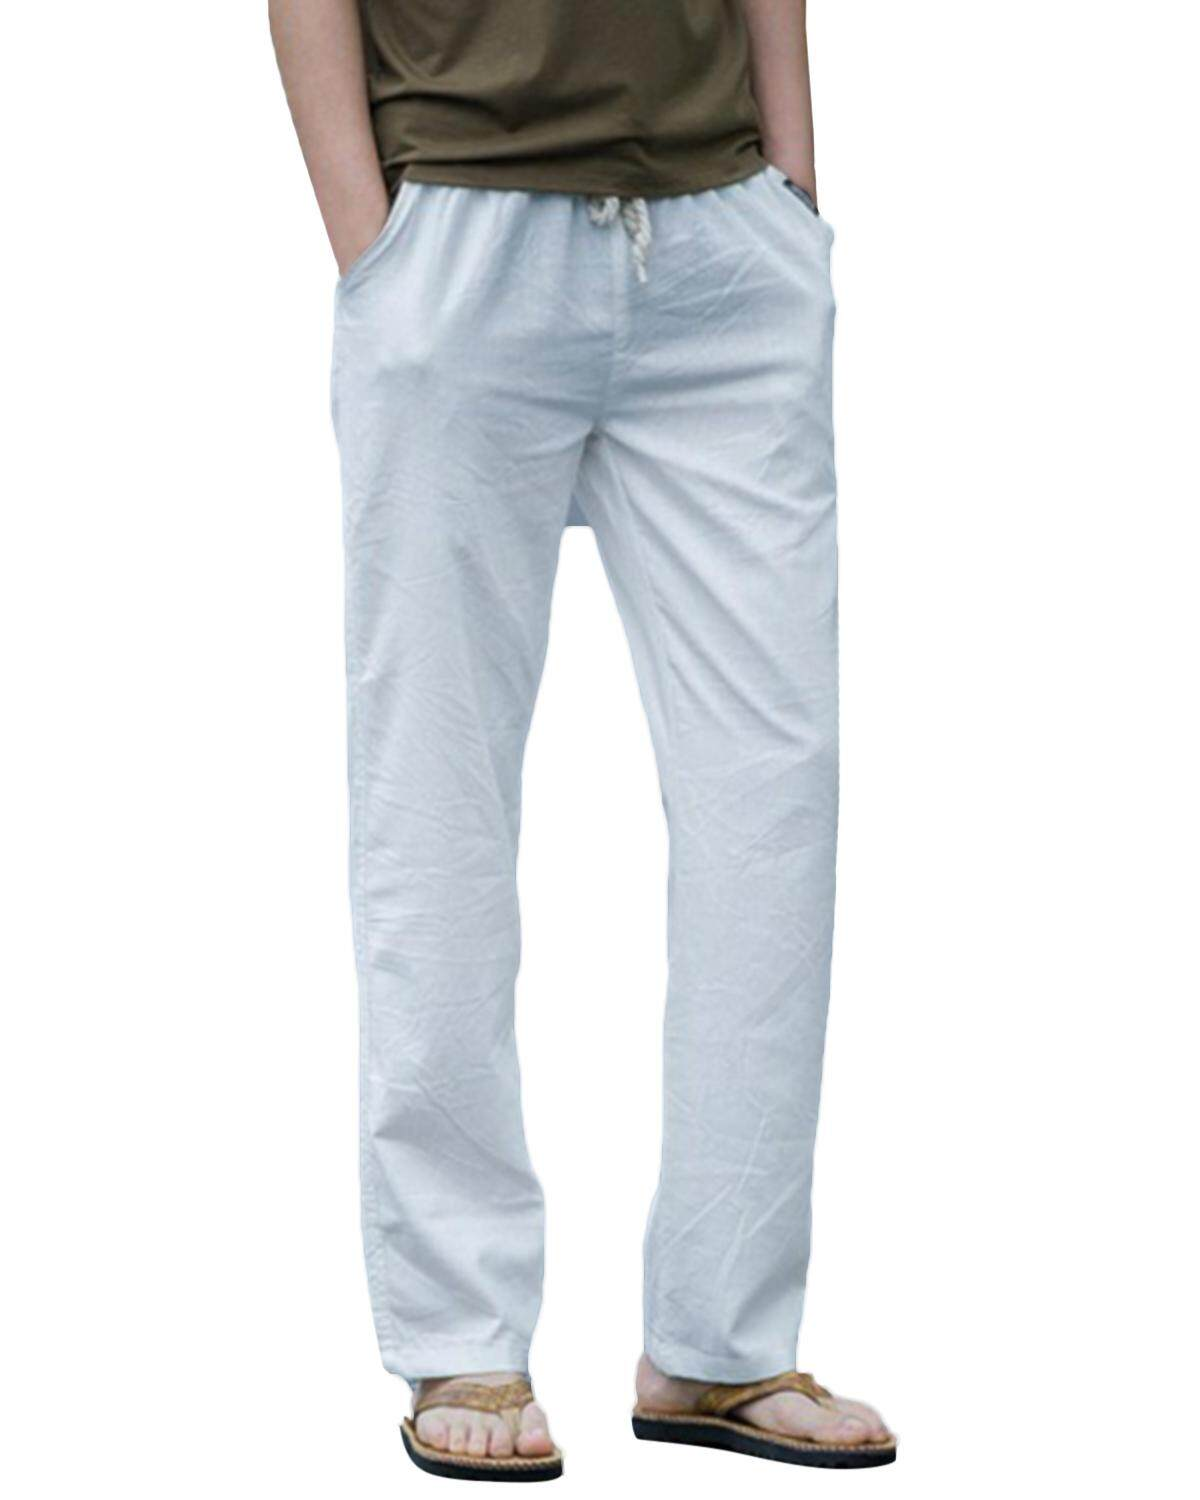 Mens Casual Breathable Cotton Linen Regular Fit Drawstring Solid Color Pants White Intl Sale